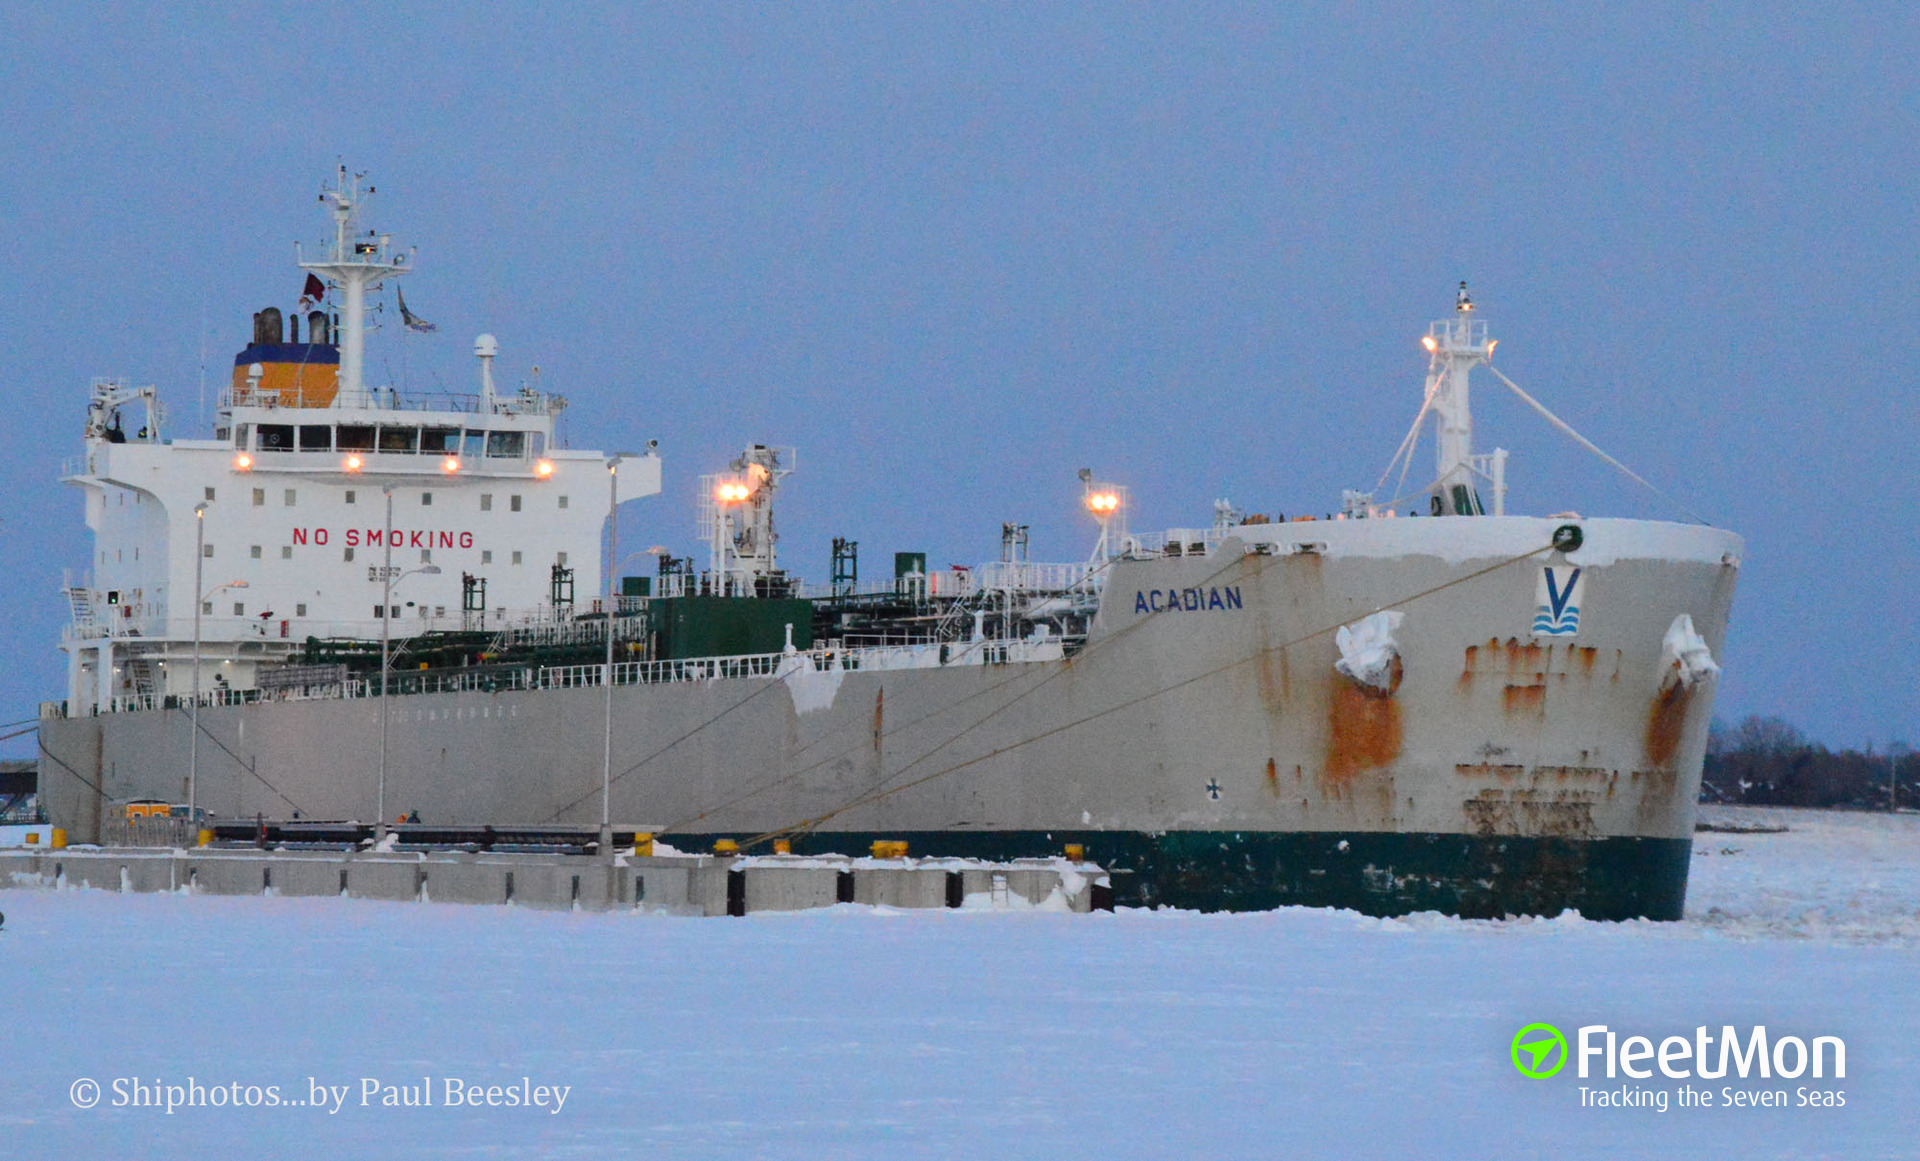 Canadian tanker Acadian stuck in ice en route to Charlottetown, Nova Scotia